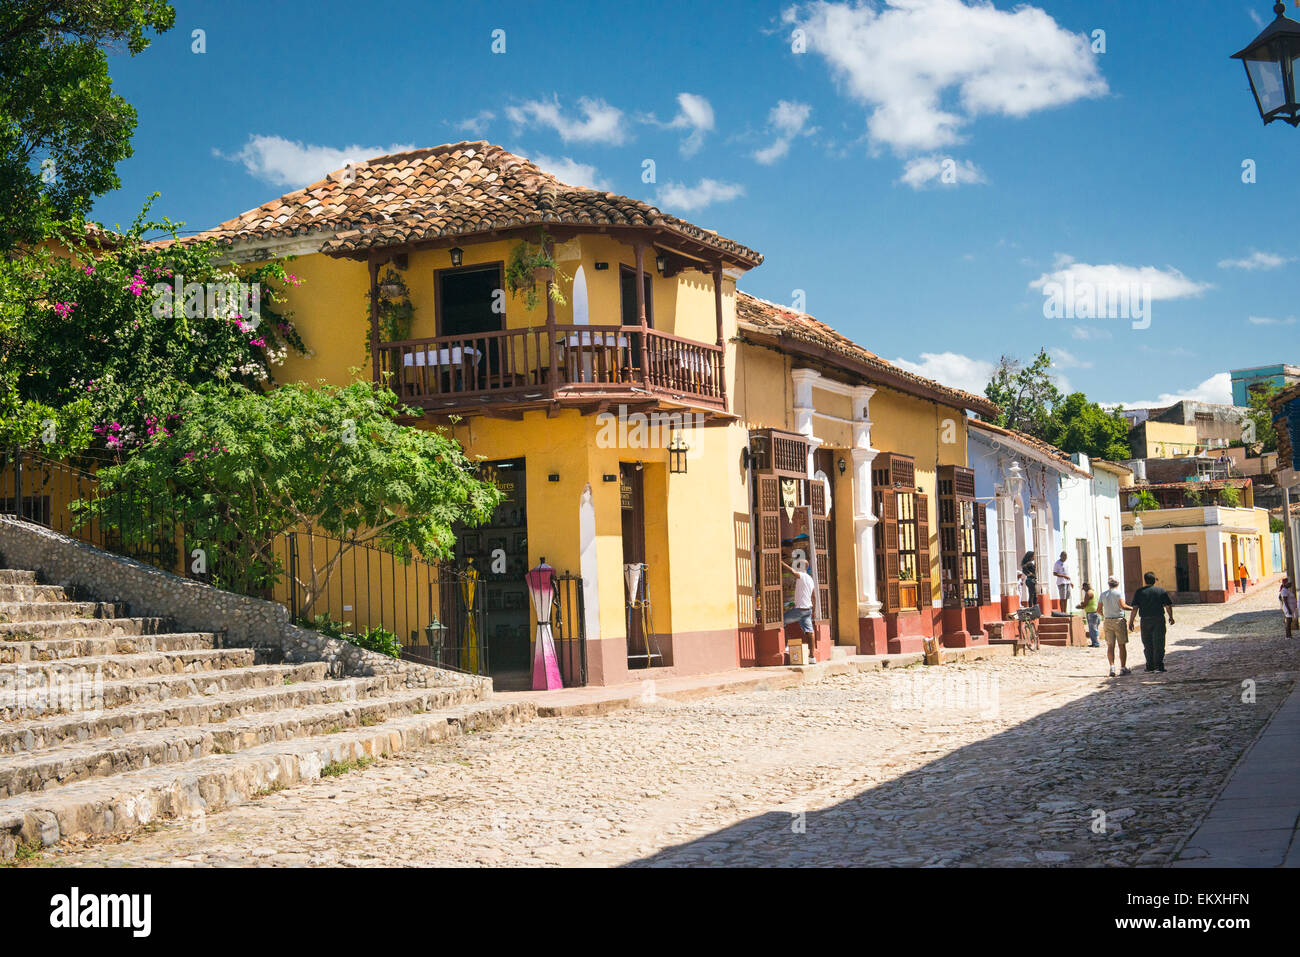 Resturant Stores Cuba Trinidad Plaza Mayor Area Bar Restaurant Shops Stores Stairs